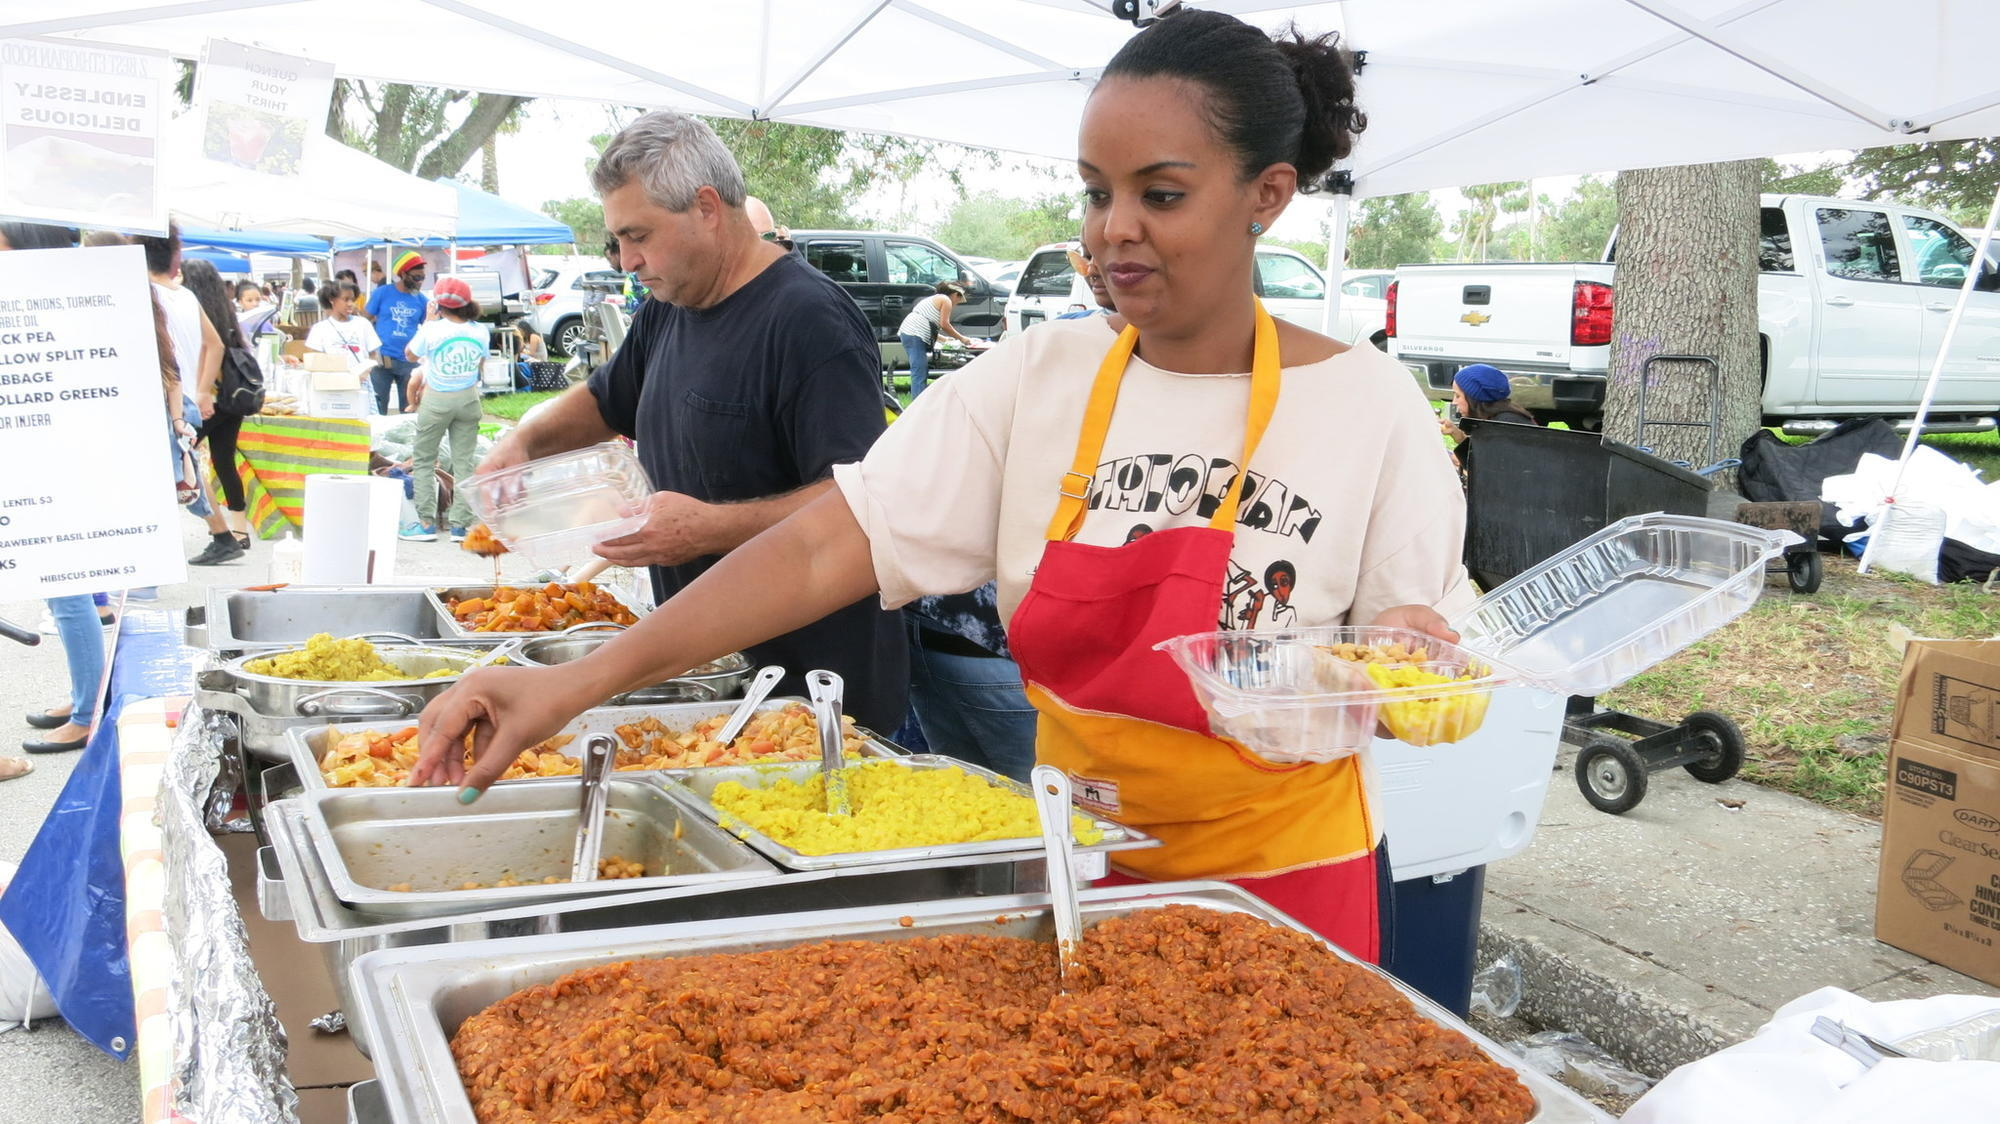 Annual Central Florida Veg Fest serves up vegetarian food, lifestyle